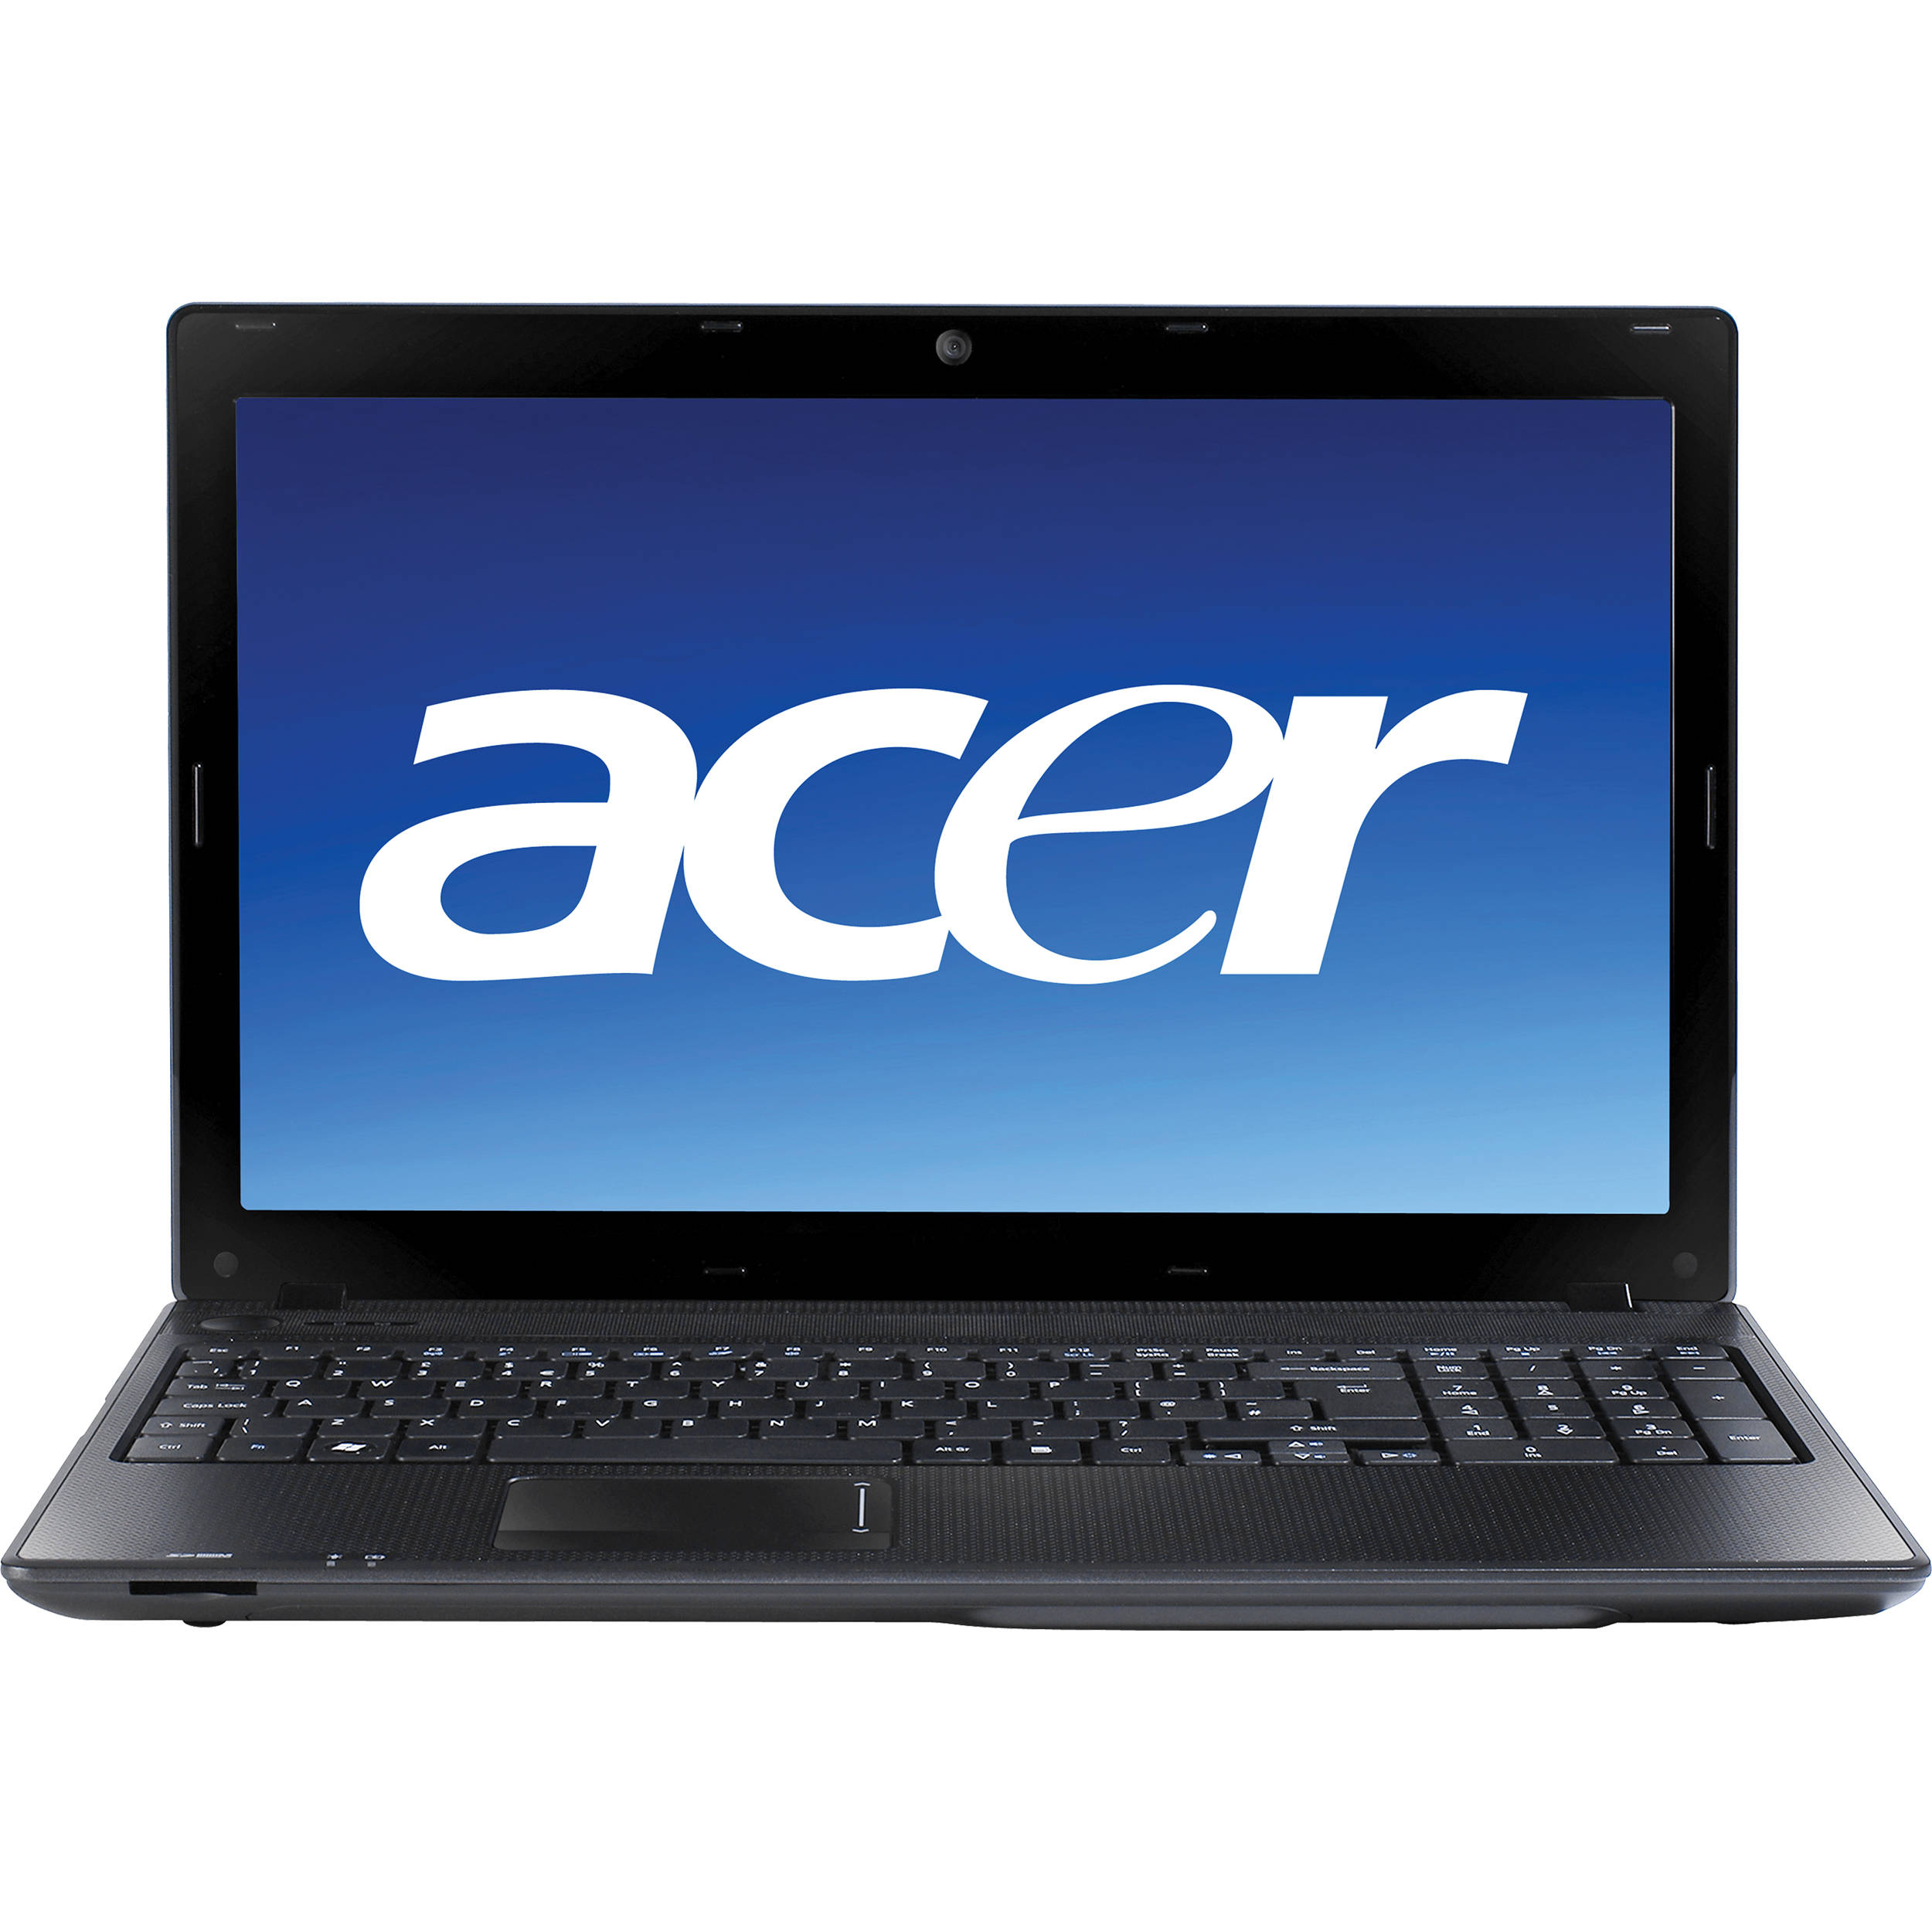 ACER EXTENSA 7120 CARD READER DRIVER PC